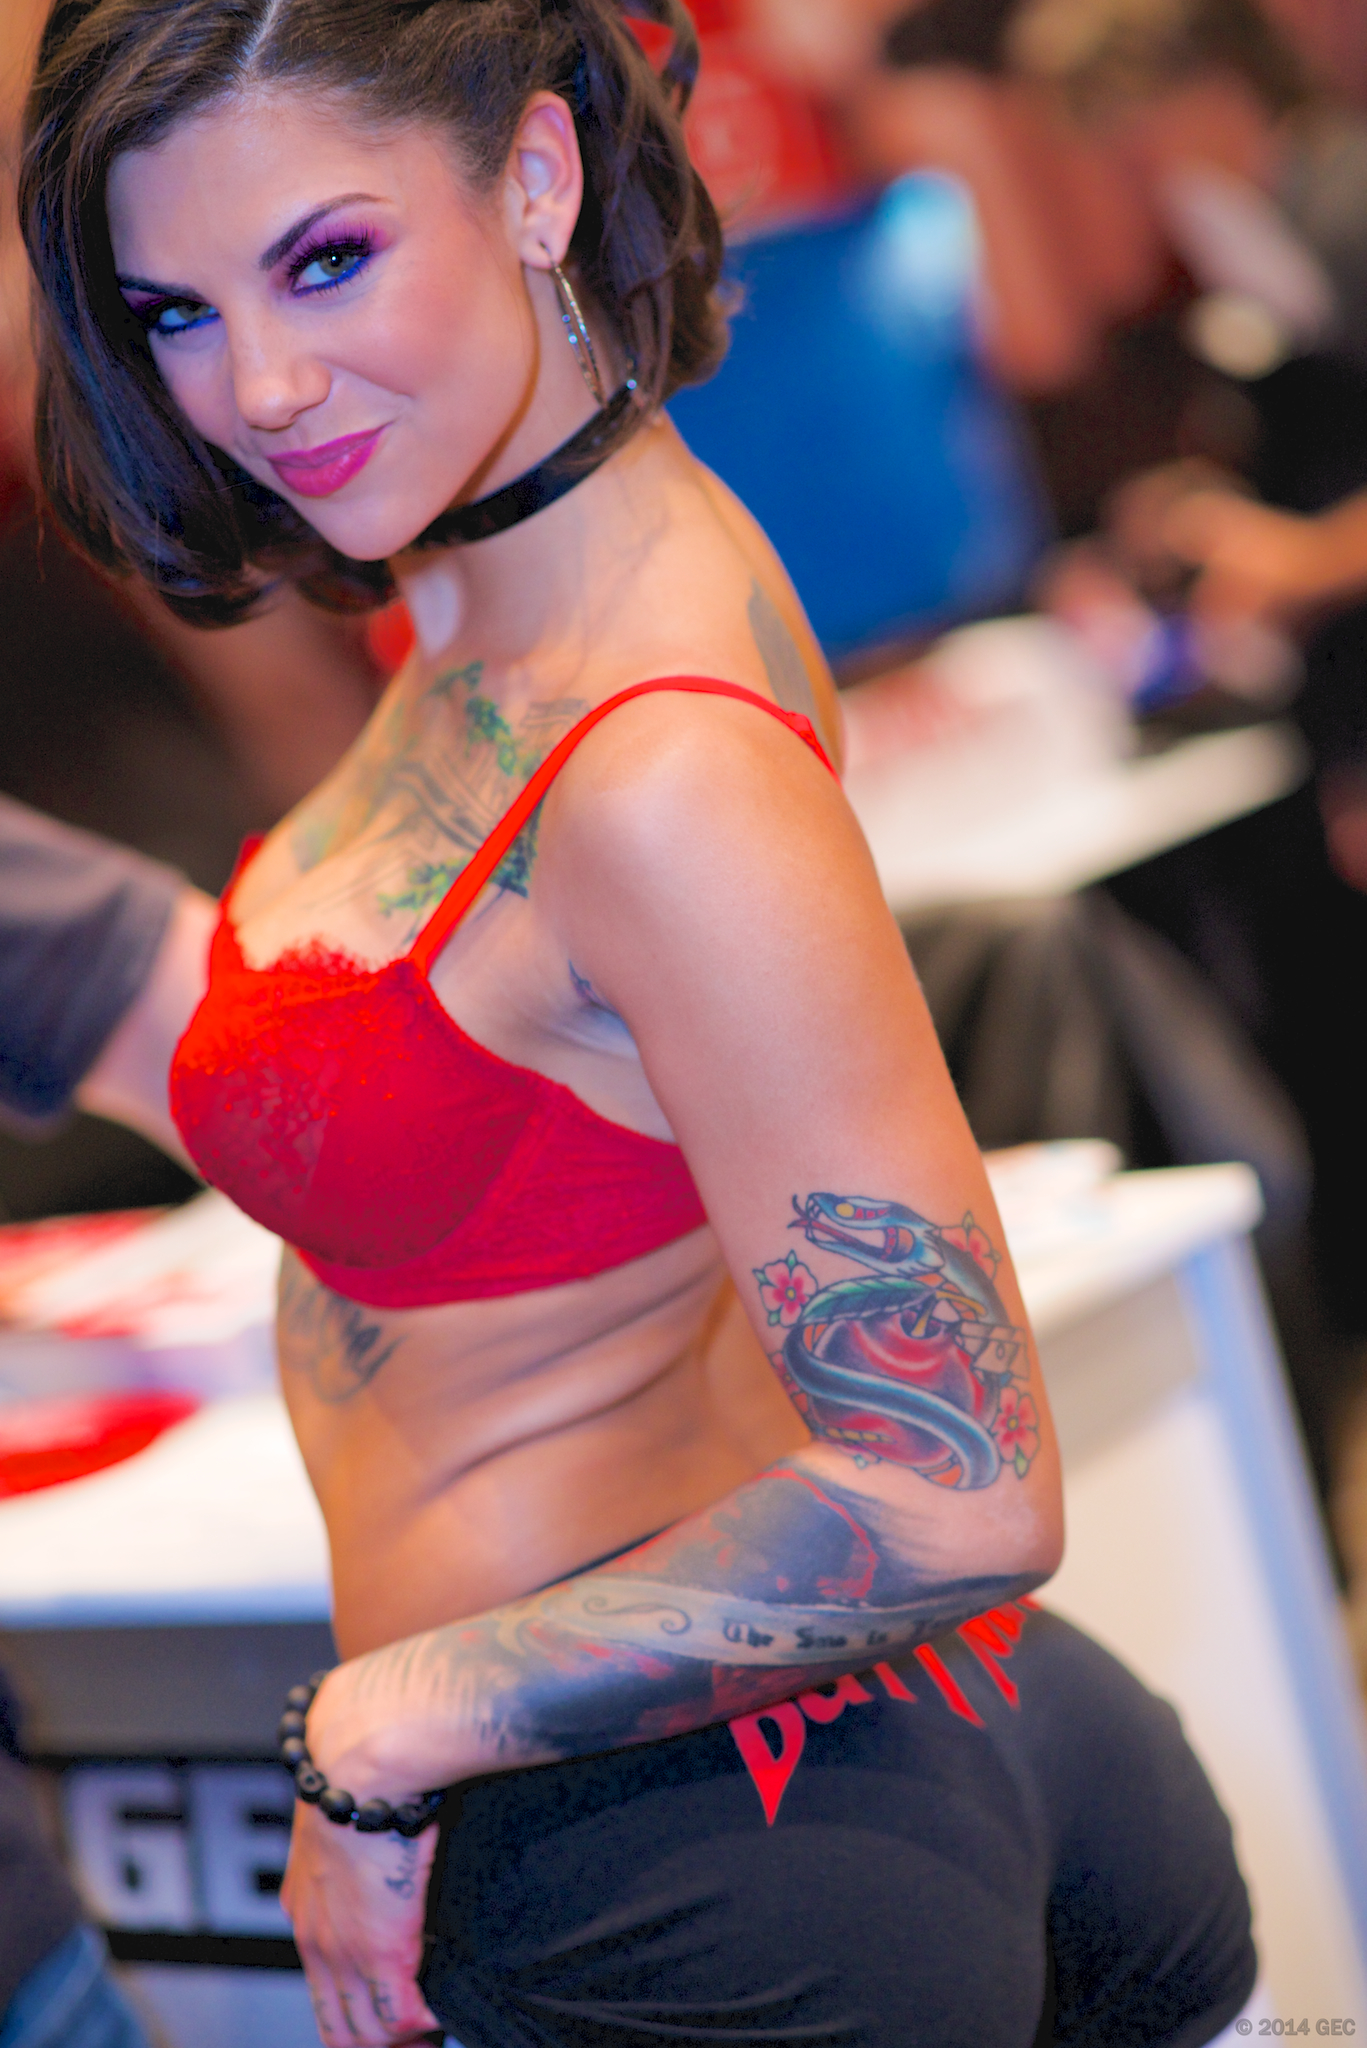 Bonnie Rotten attending the AVN Adult Entertainment Expo at the Hard Rock Hotel in Las Vegas on January 17, 2014